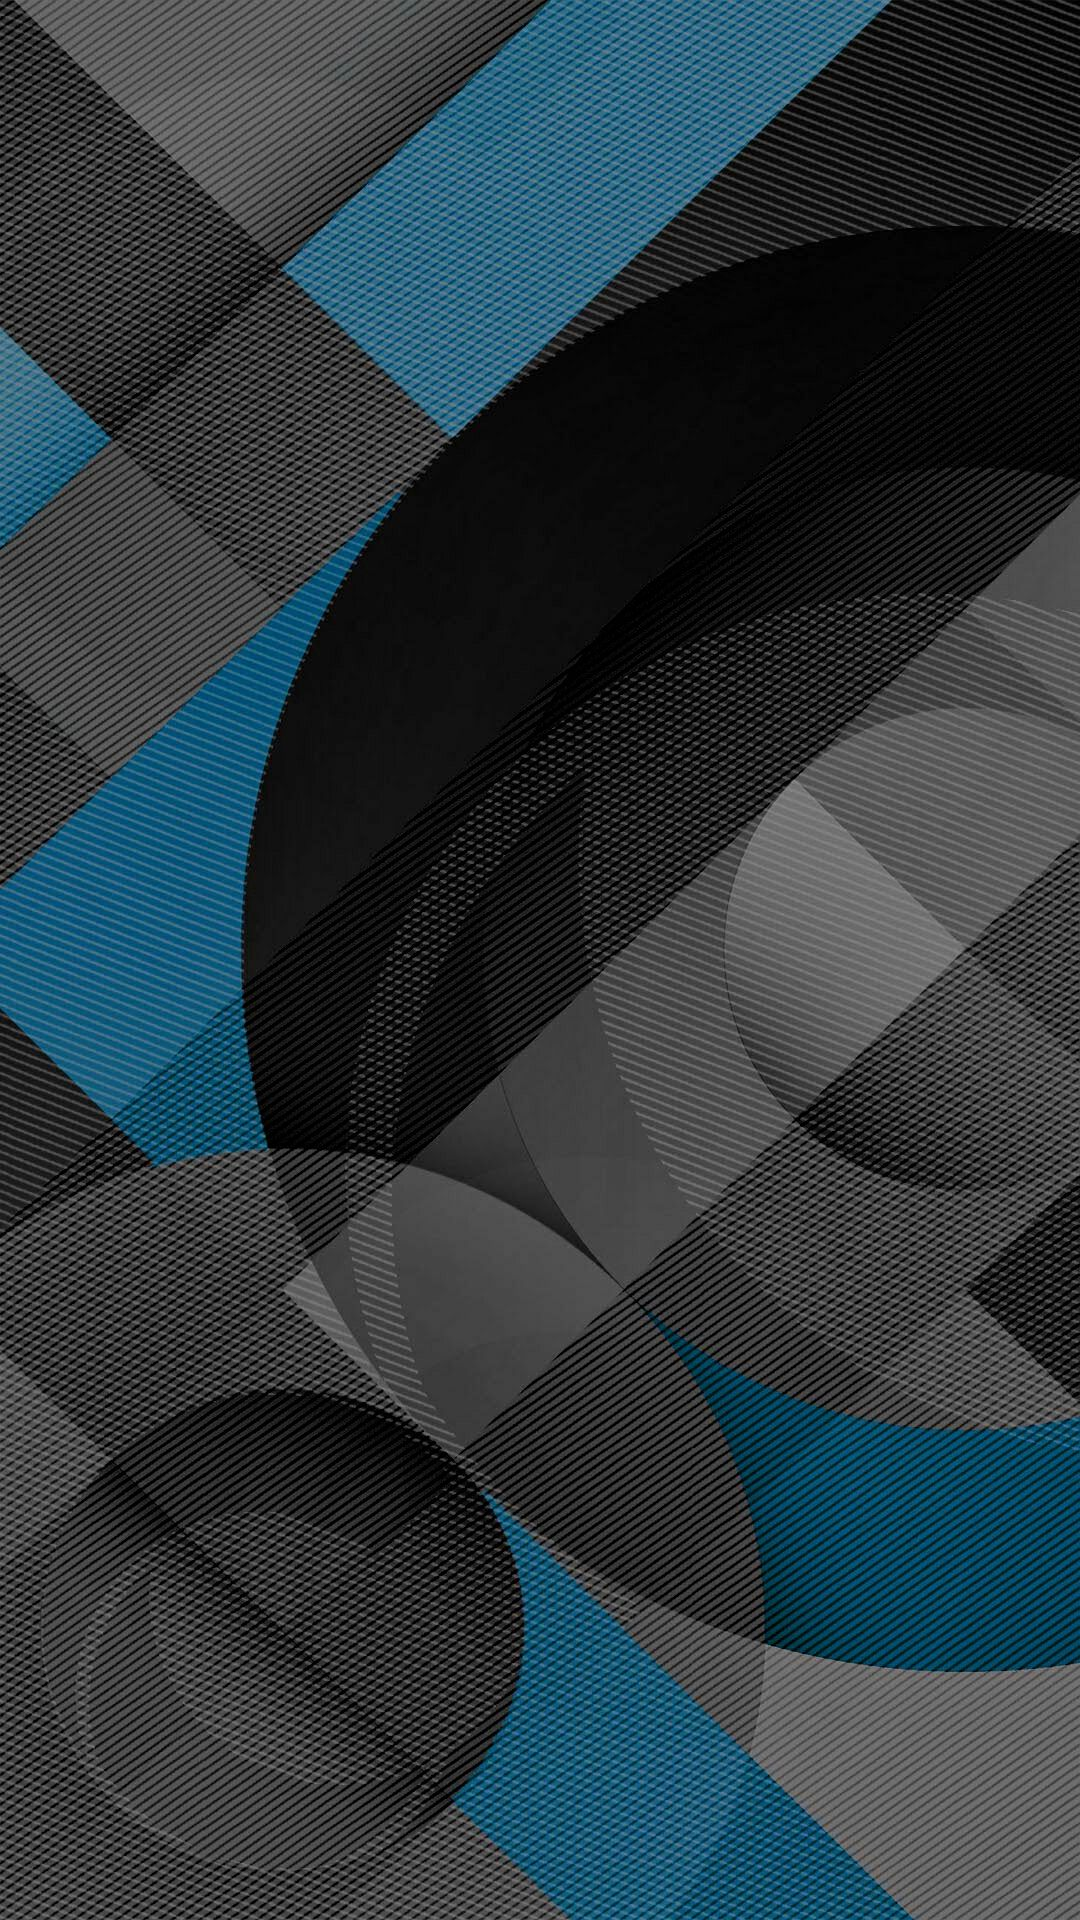 Blue Grey and Black Geometric Wallpaper